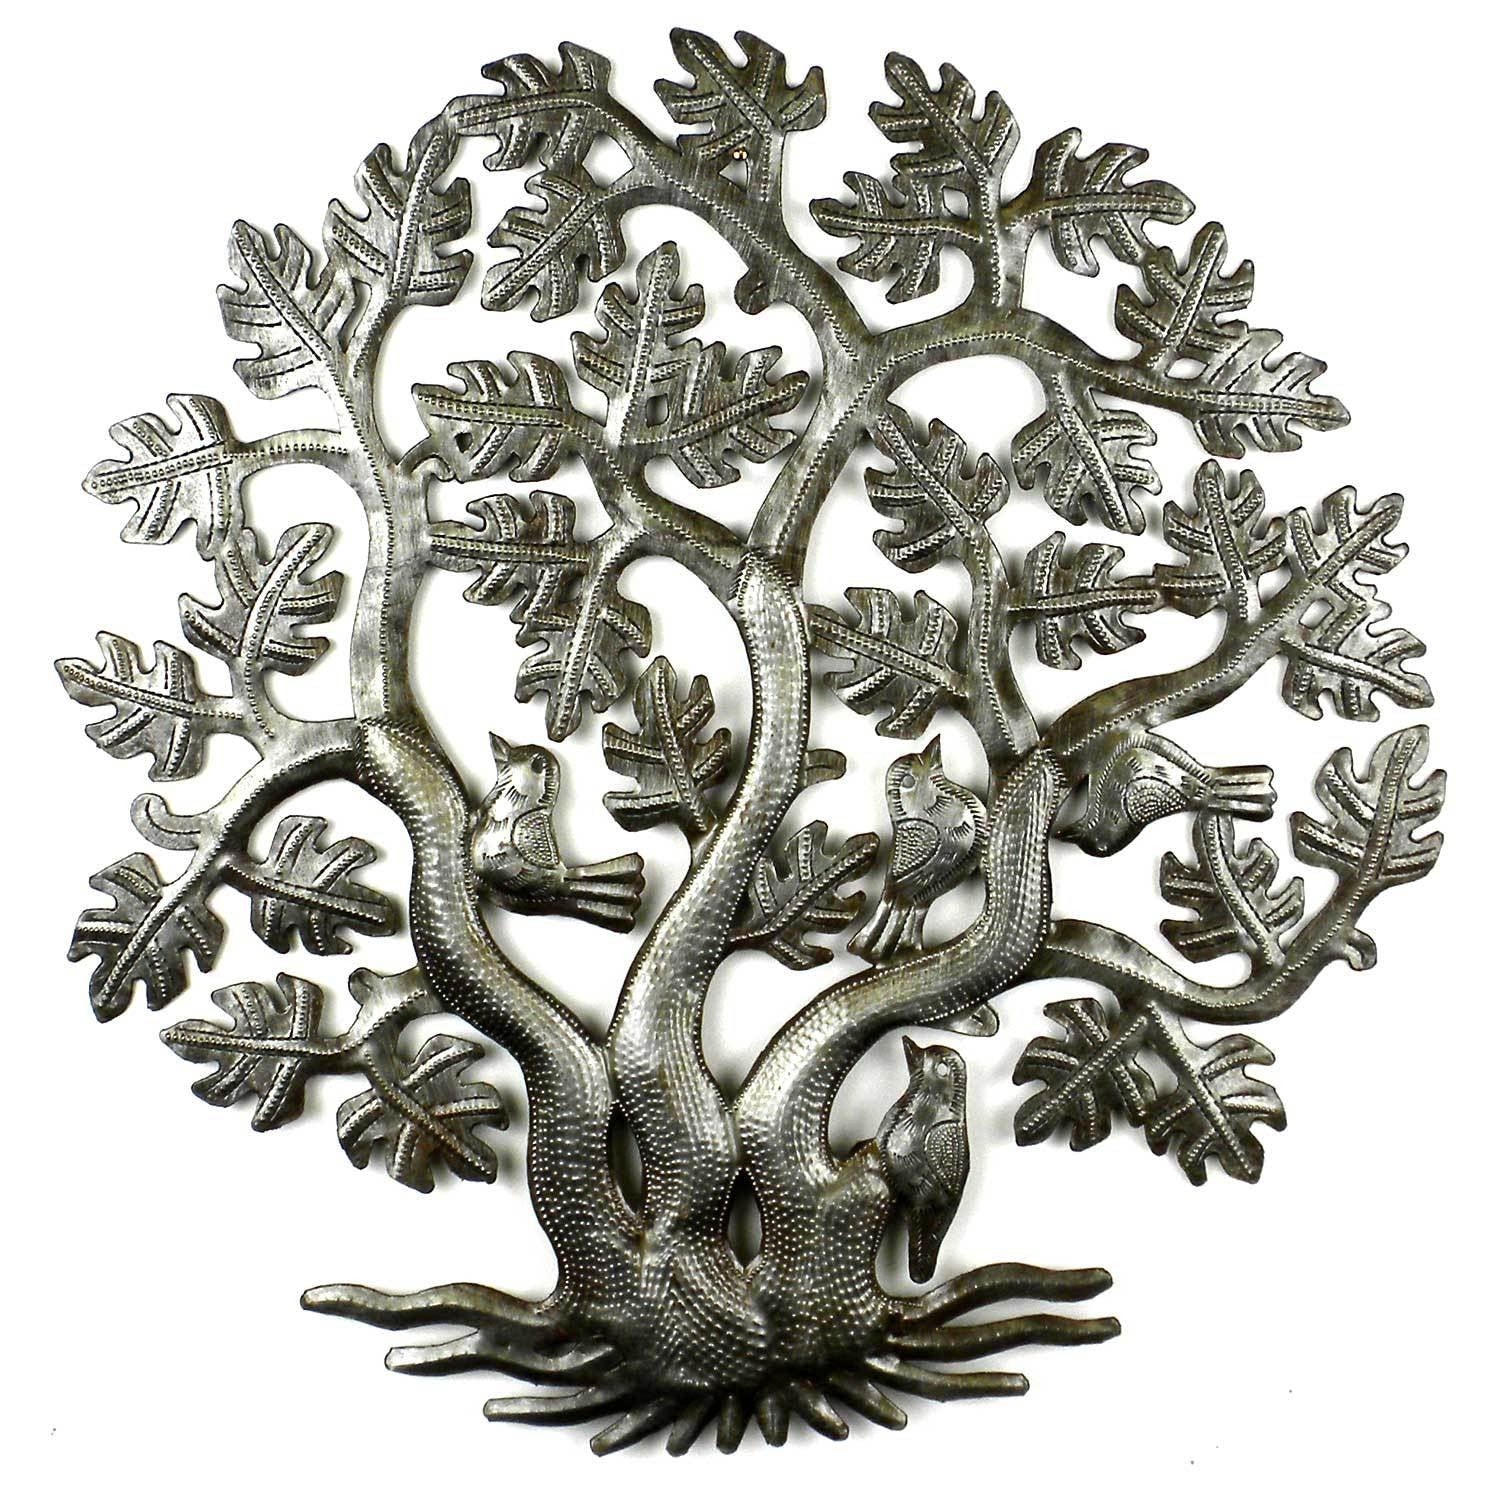 14 Inch 3 Trunk Tree Of Life Wall Art   Croix Des Bouquets